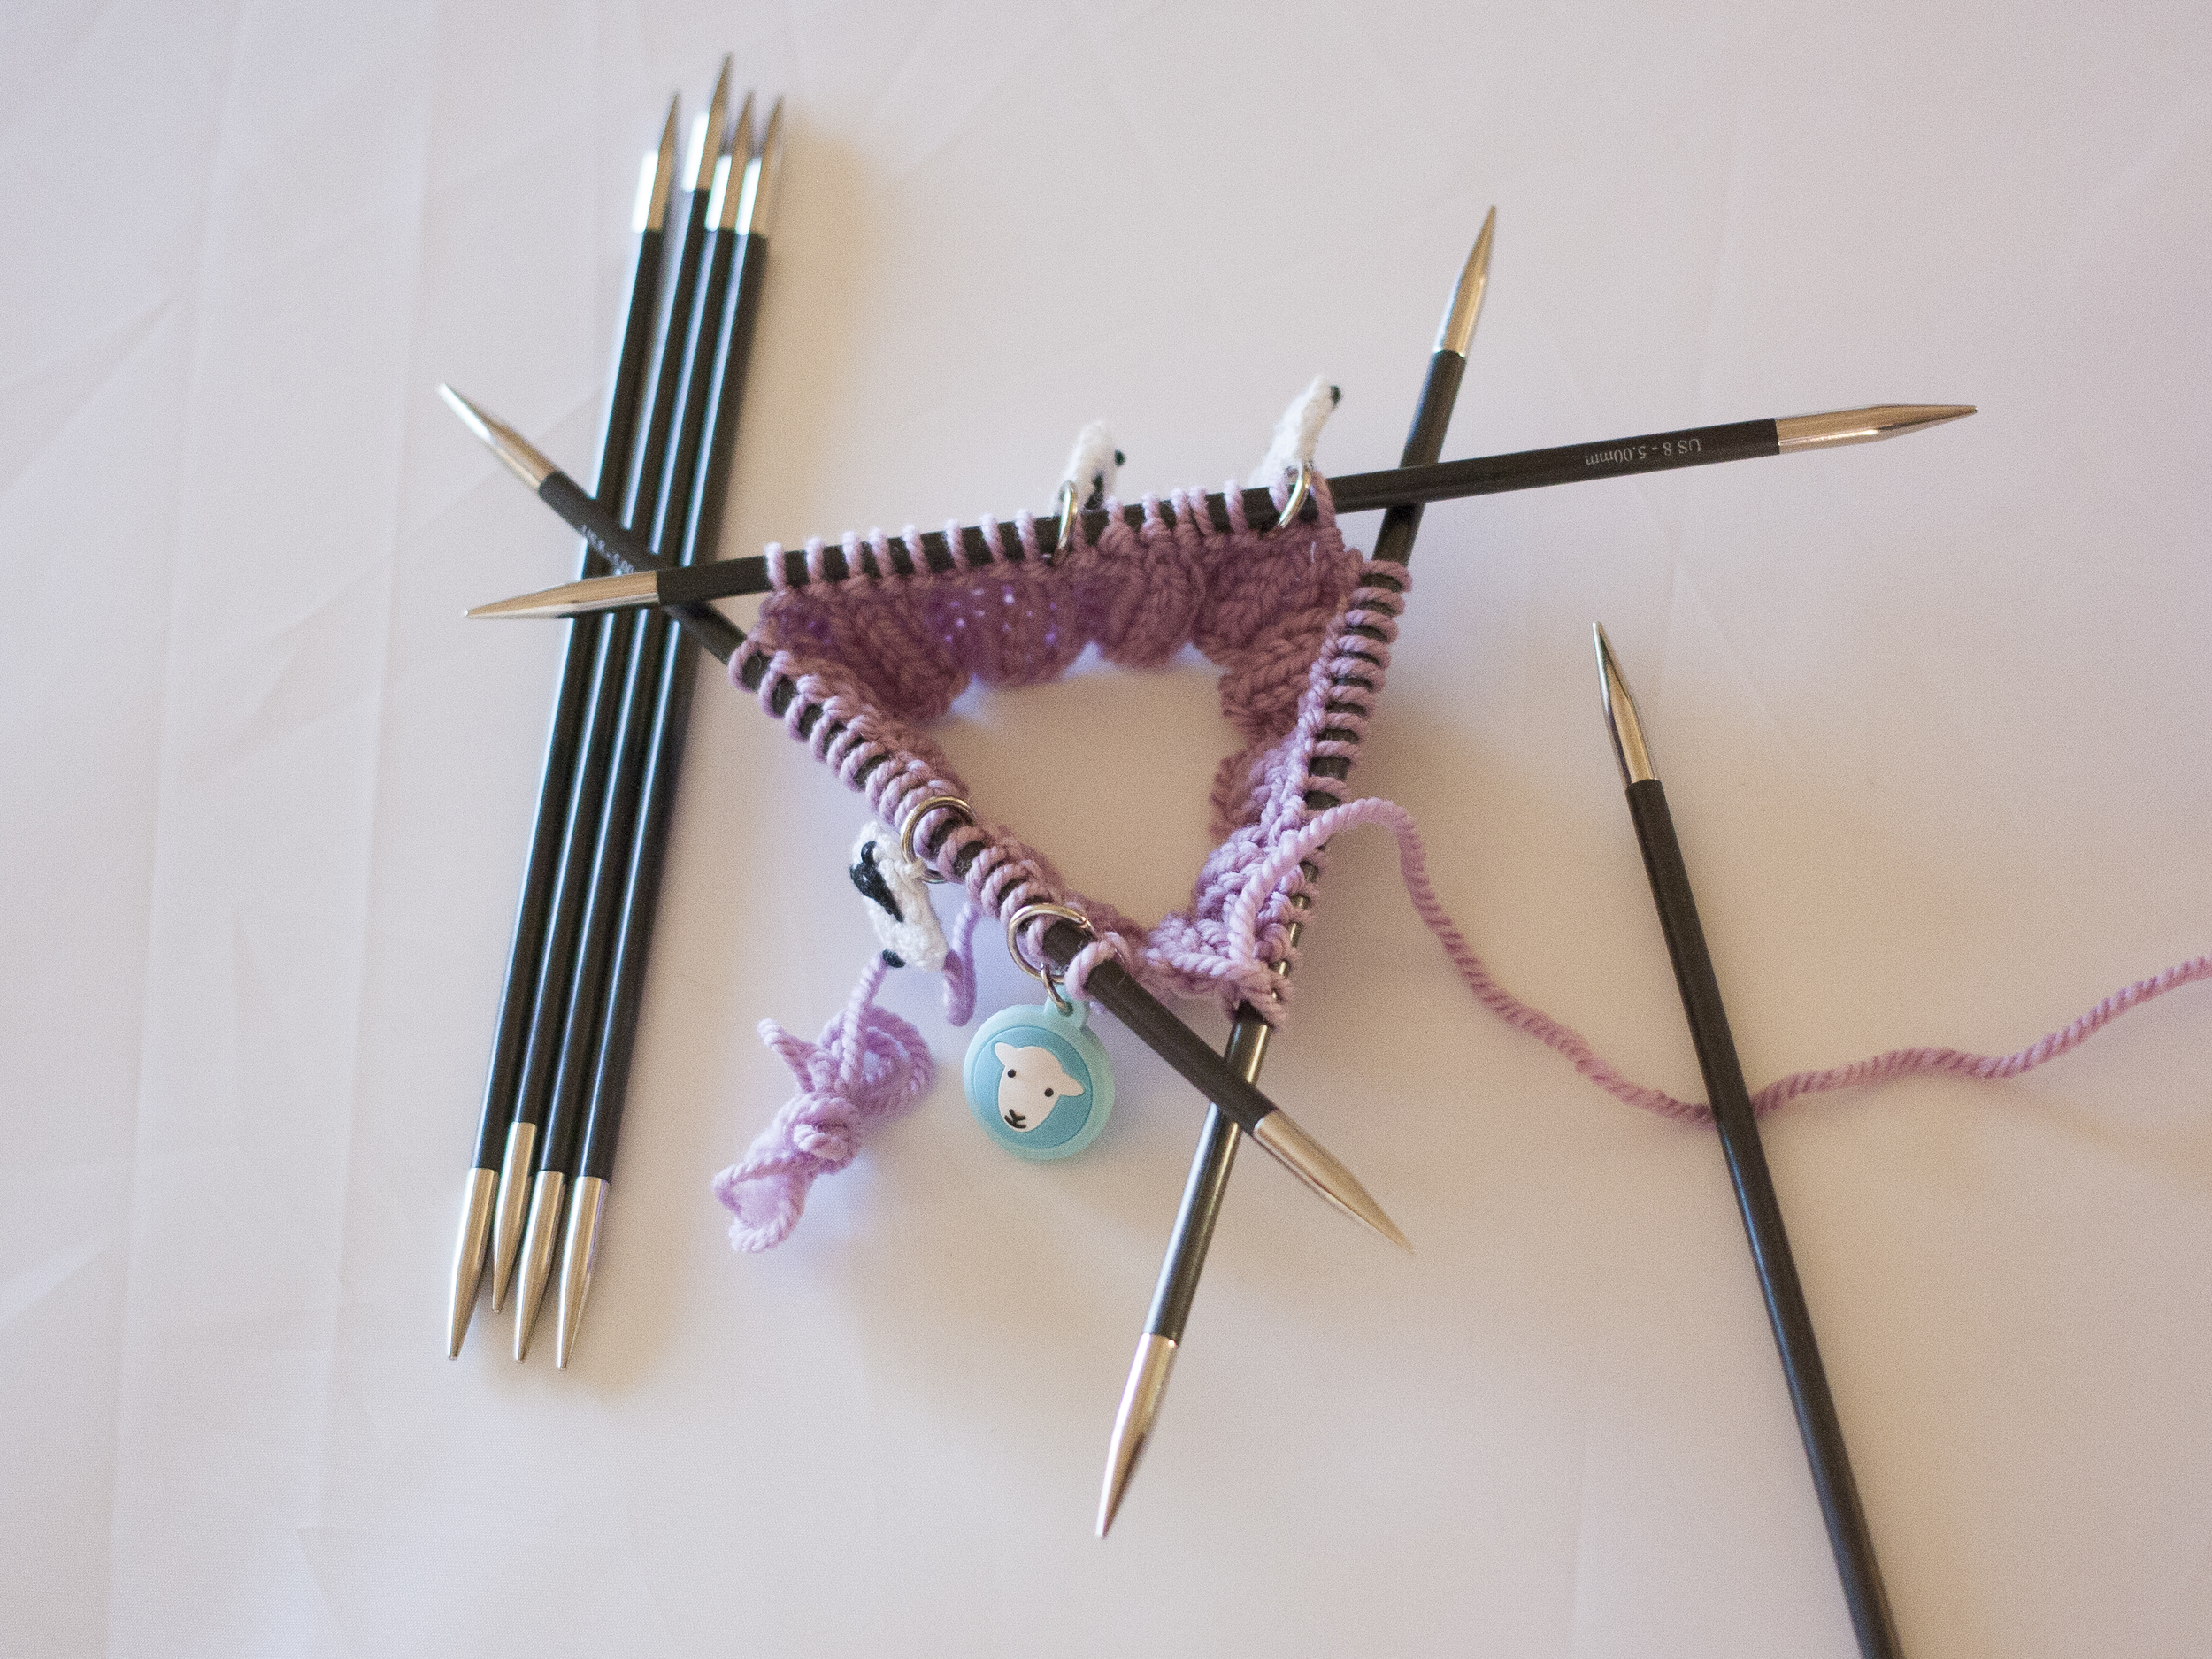 Changing needle sizes in knitting